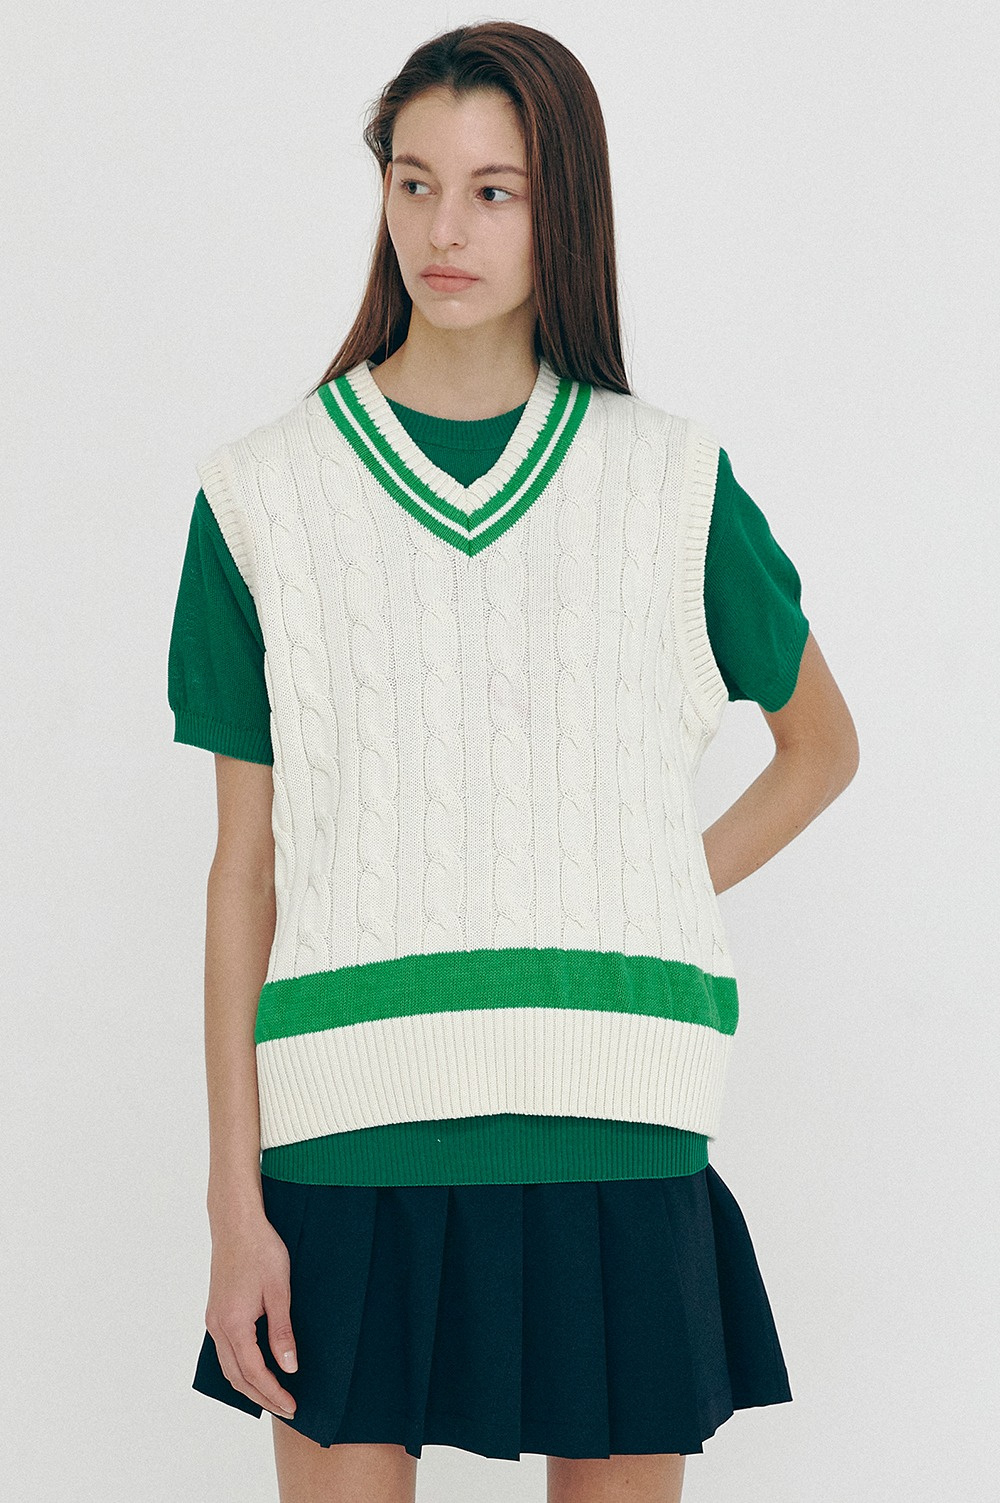 [5/4(화) 예약배송][SS21 CLOVE] Cable Knit Vest Green